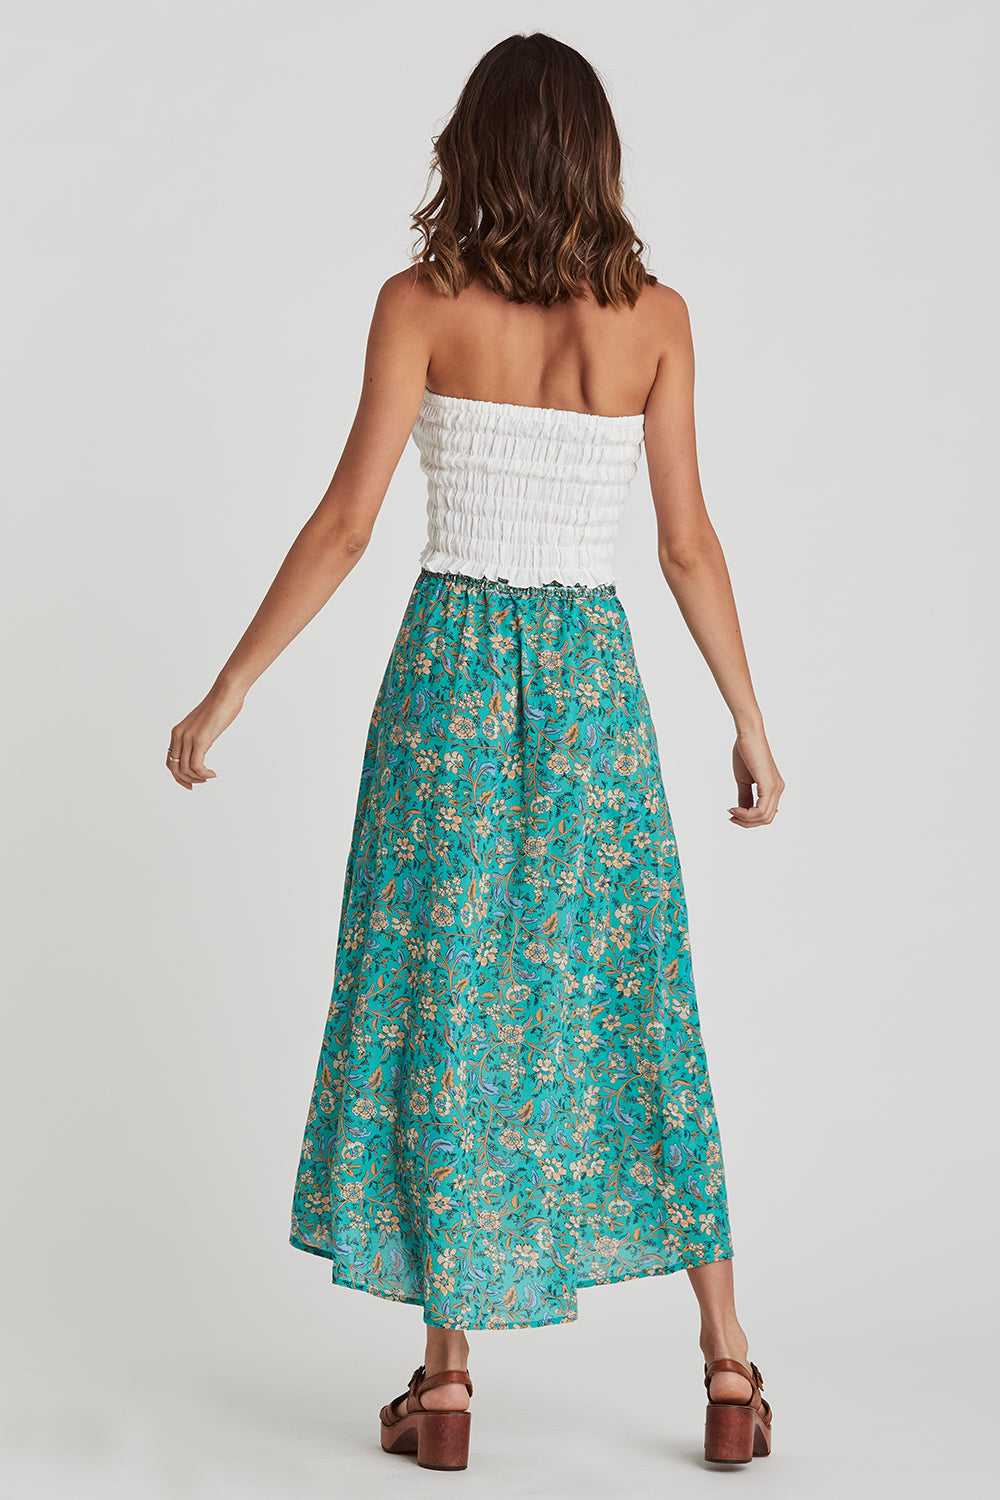 Daisy Chain Skirt in Poolside